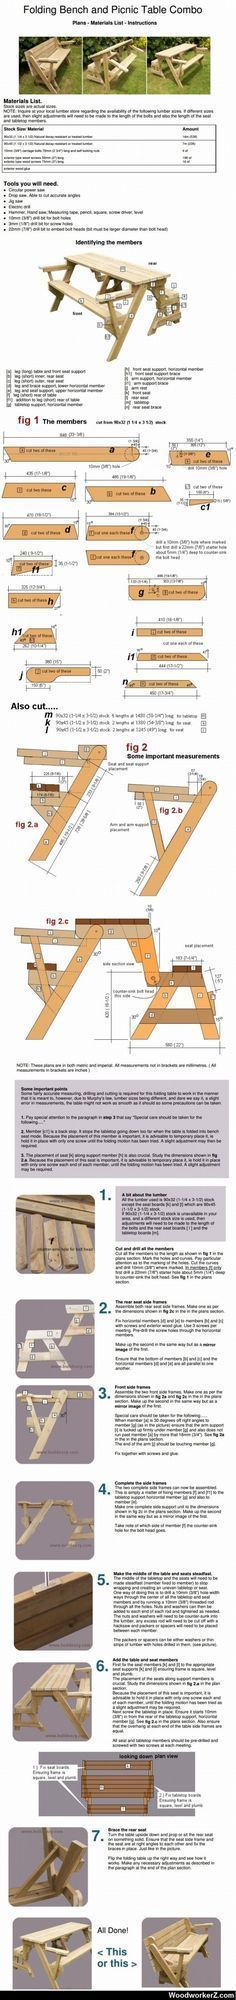 Folding Bench and Picnic Table Combo: Table Benches, Diy'S Picnics, Woods Work, Pallets Benches, Woods Projects, Woodworkerz Com, Picnics Tables, Diy'S Instructions, Folding Benches